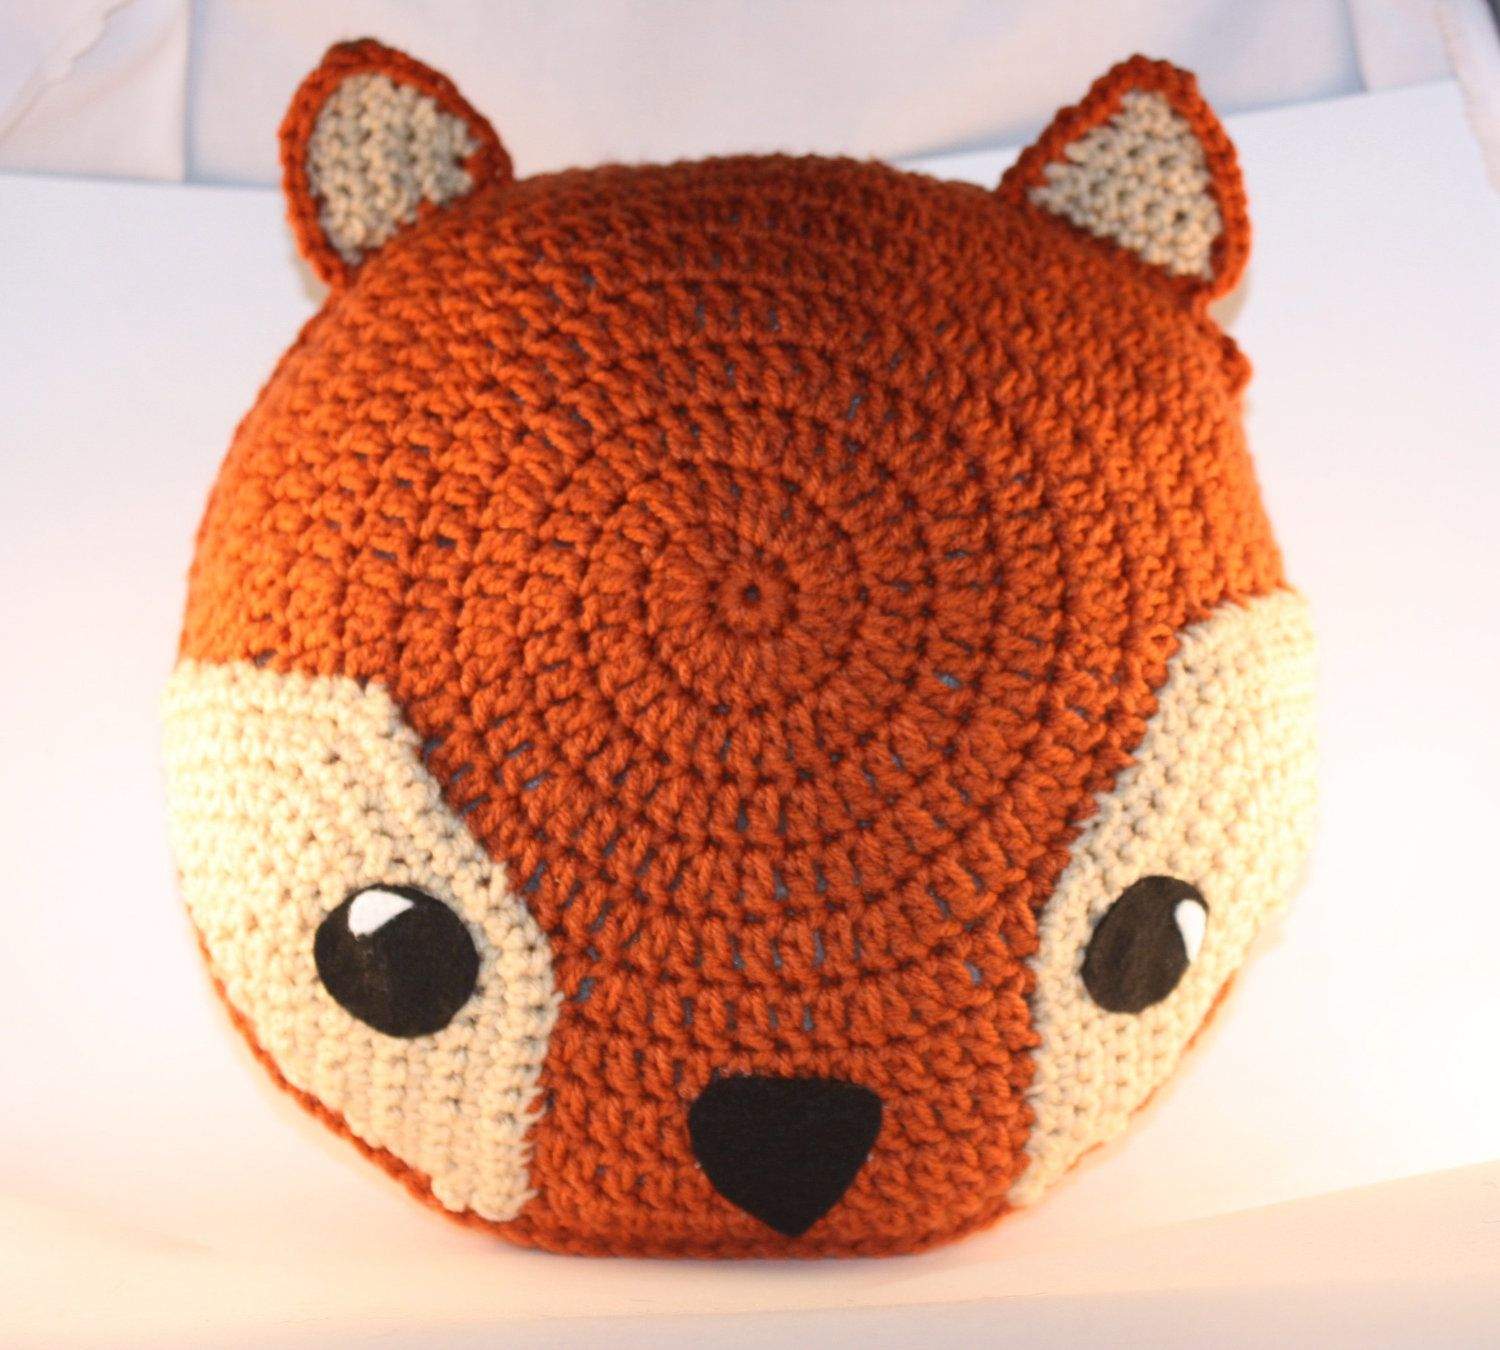 Rusty orange fox pillow crochet woodland by dunnwithlove on etsy rusty orange fox pillow crochet woodland by dunnwithlove on etsy 3000 usd via etsy bankloansurffo Image collections